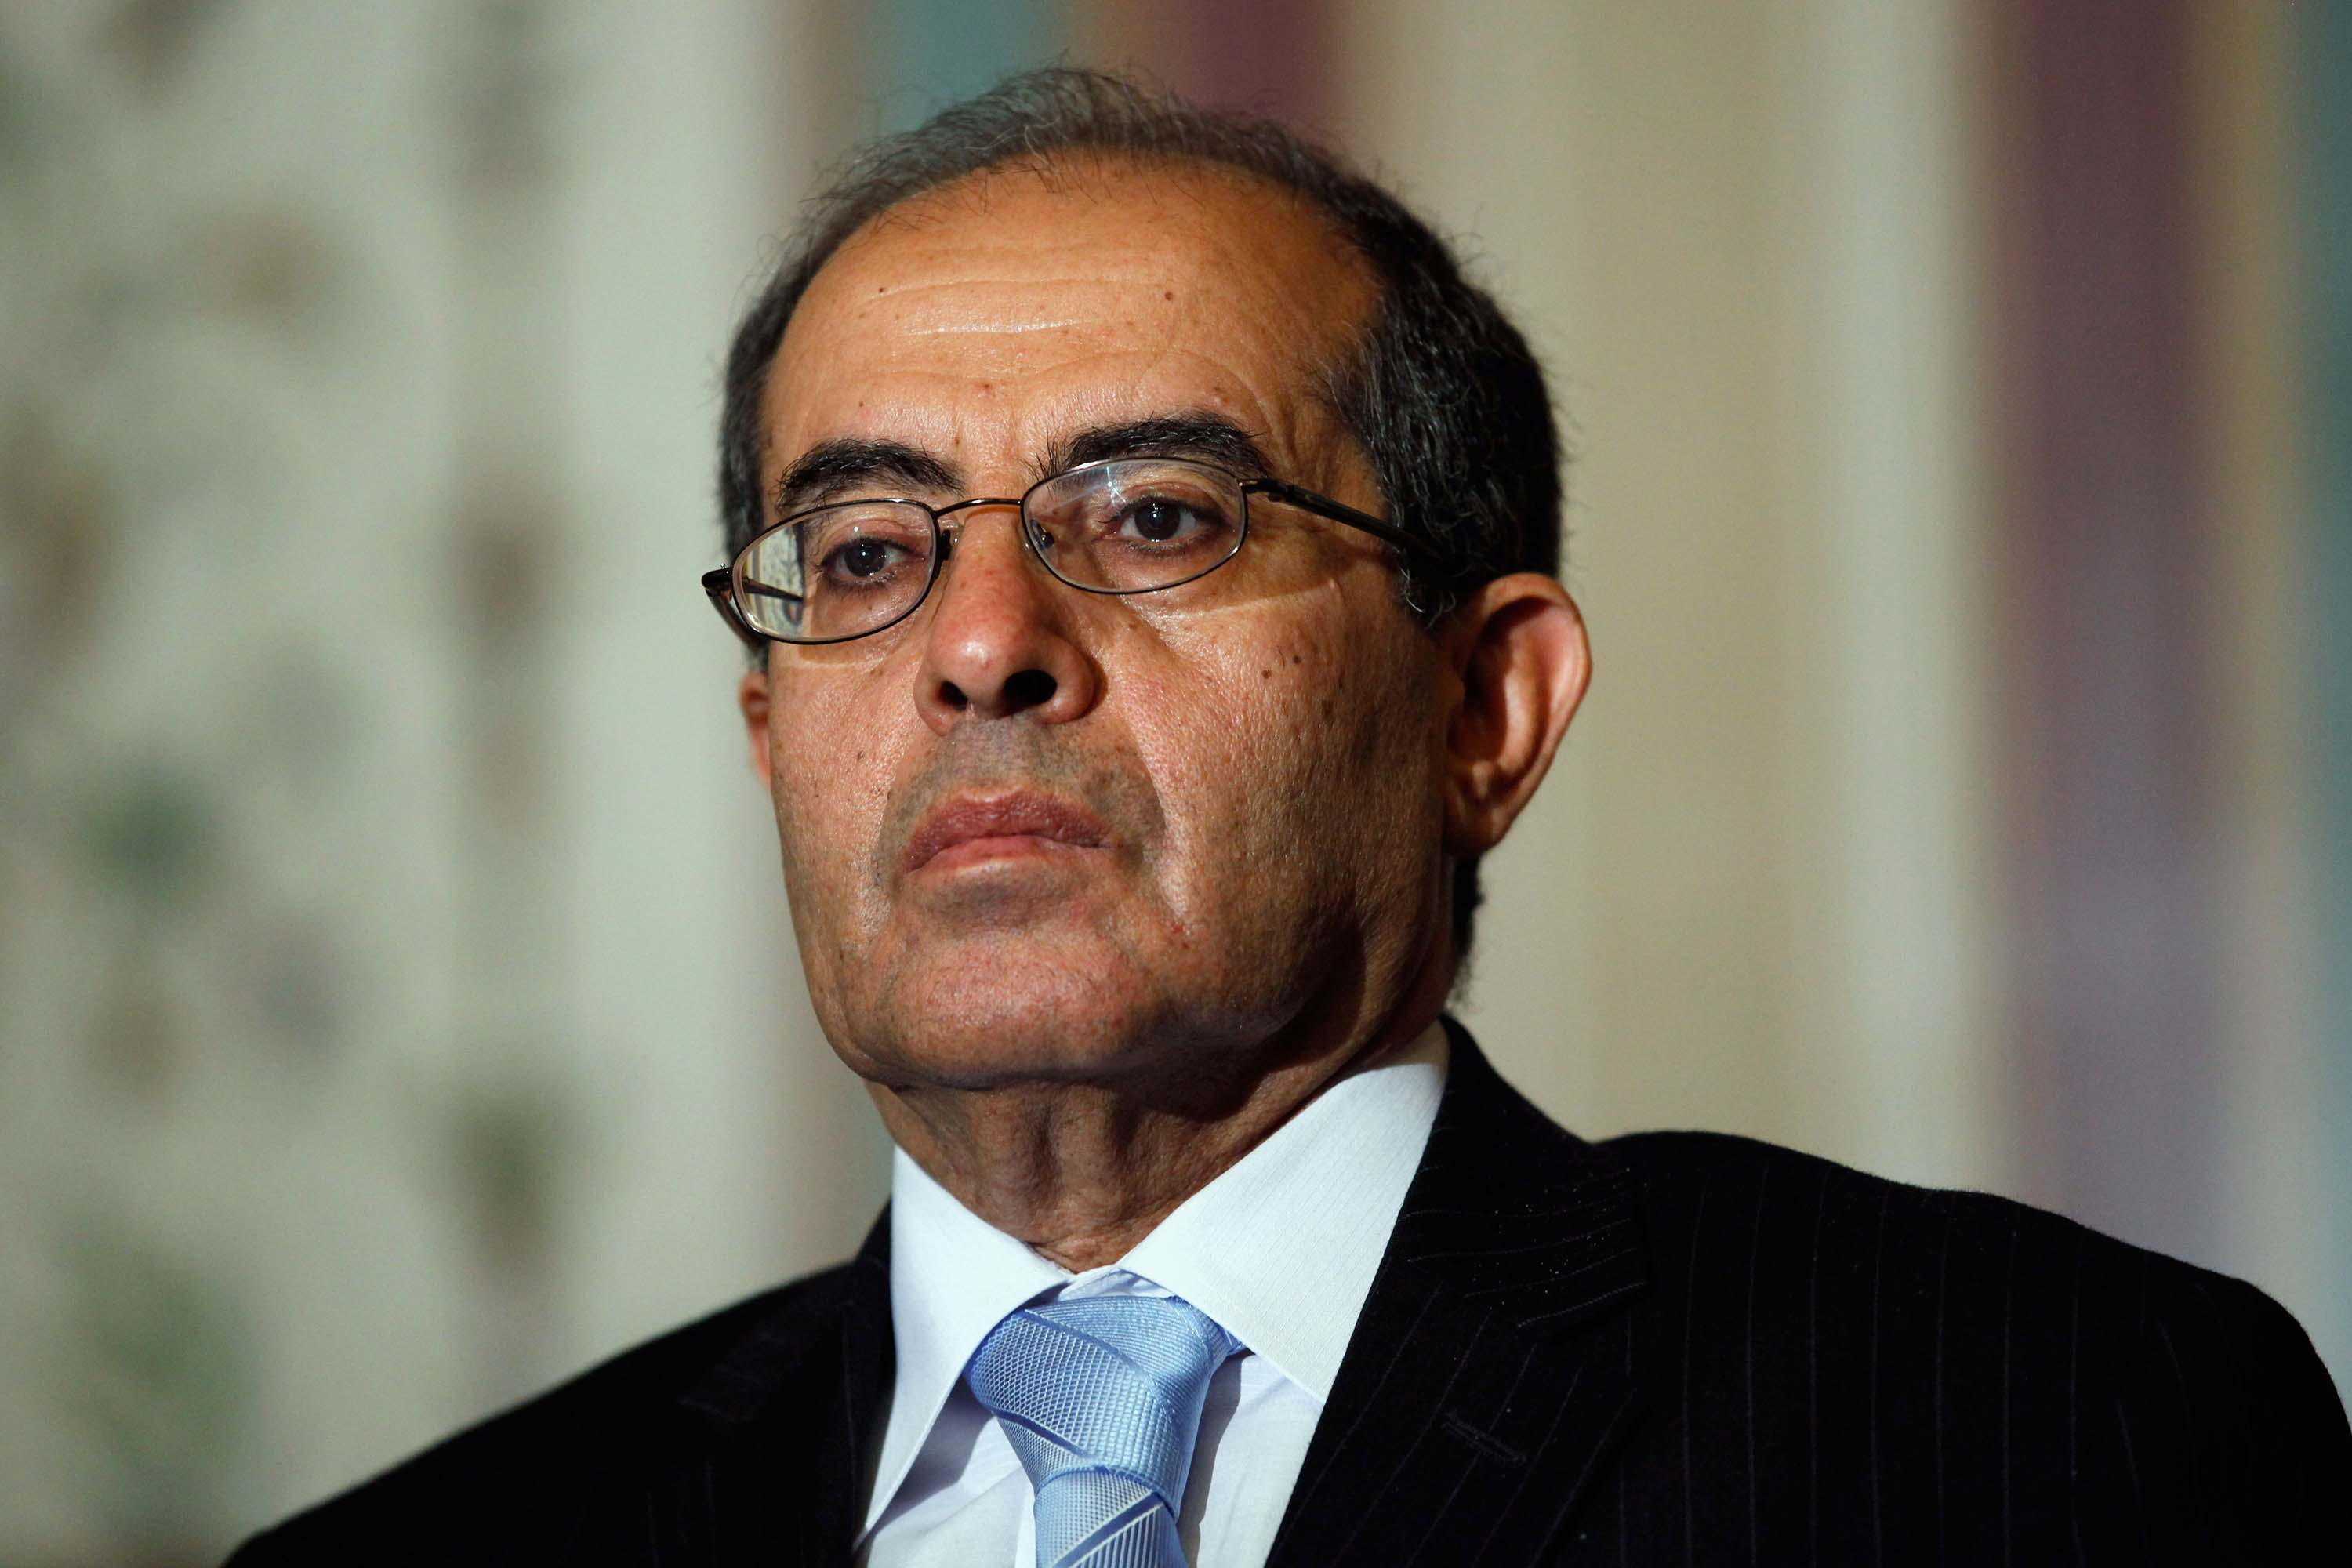 Former Libyan Prime Minister Mahmoud Jibril pictured in Washington, DC in 2011.